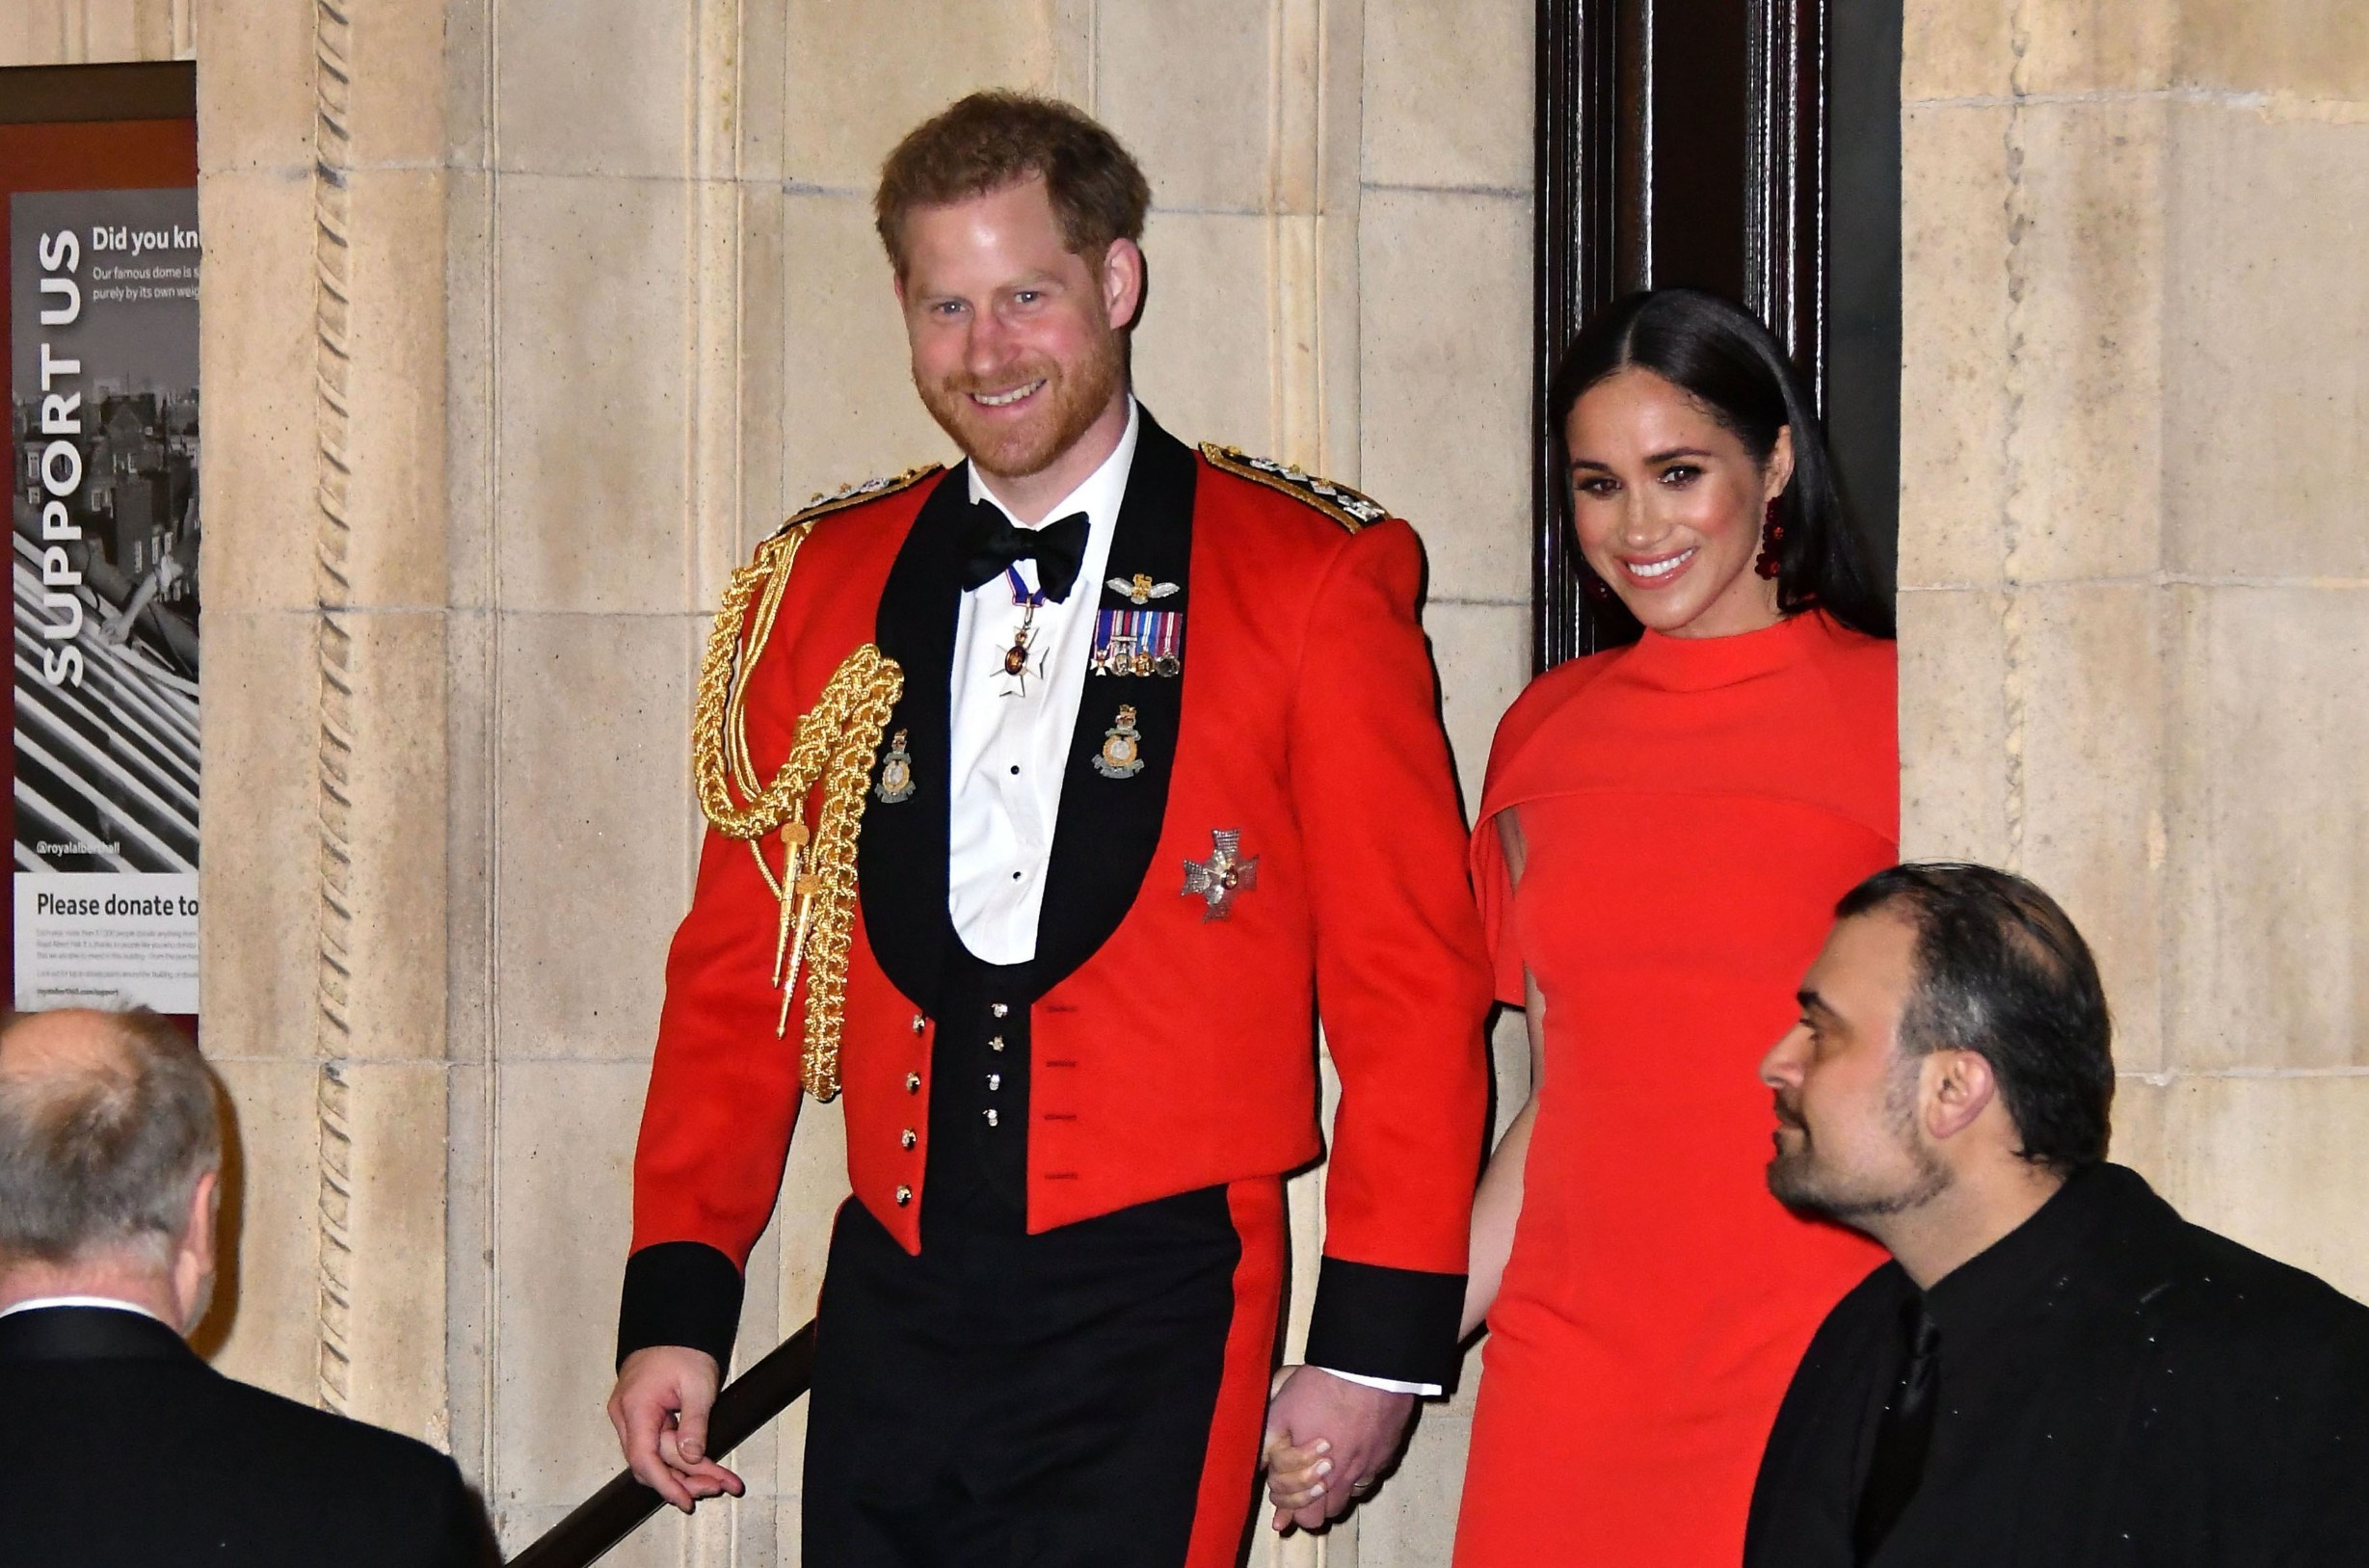 Meghan Duchess of Sussex and Prince Harry Mountbatten Festival of Music at the Royal Albert Hall, London, UK - 07 Mar 2020, Image: 504422726, License: Rights-managed, Restrictions: , Model Release: no, Credit line: Nils Jorgensen / Shutterstock Editorial / Profimedia